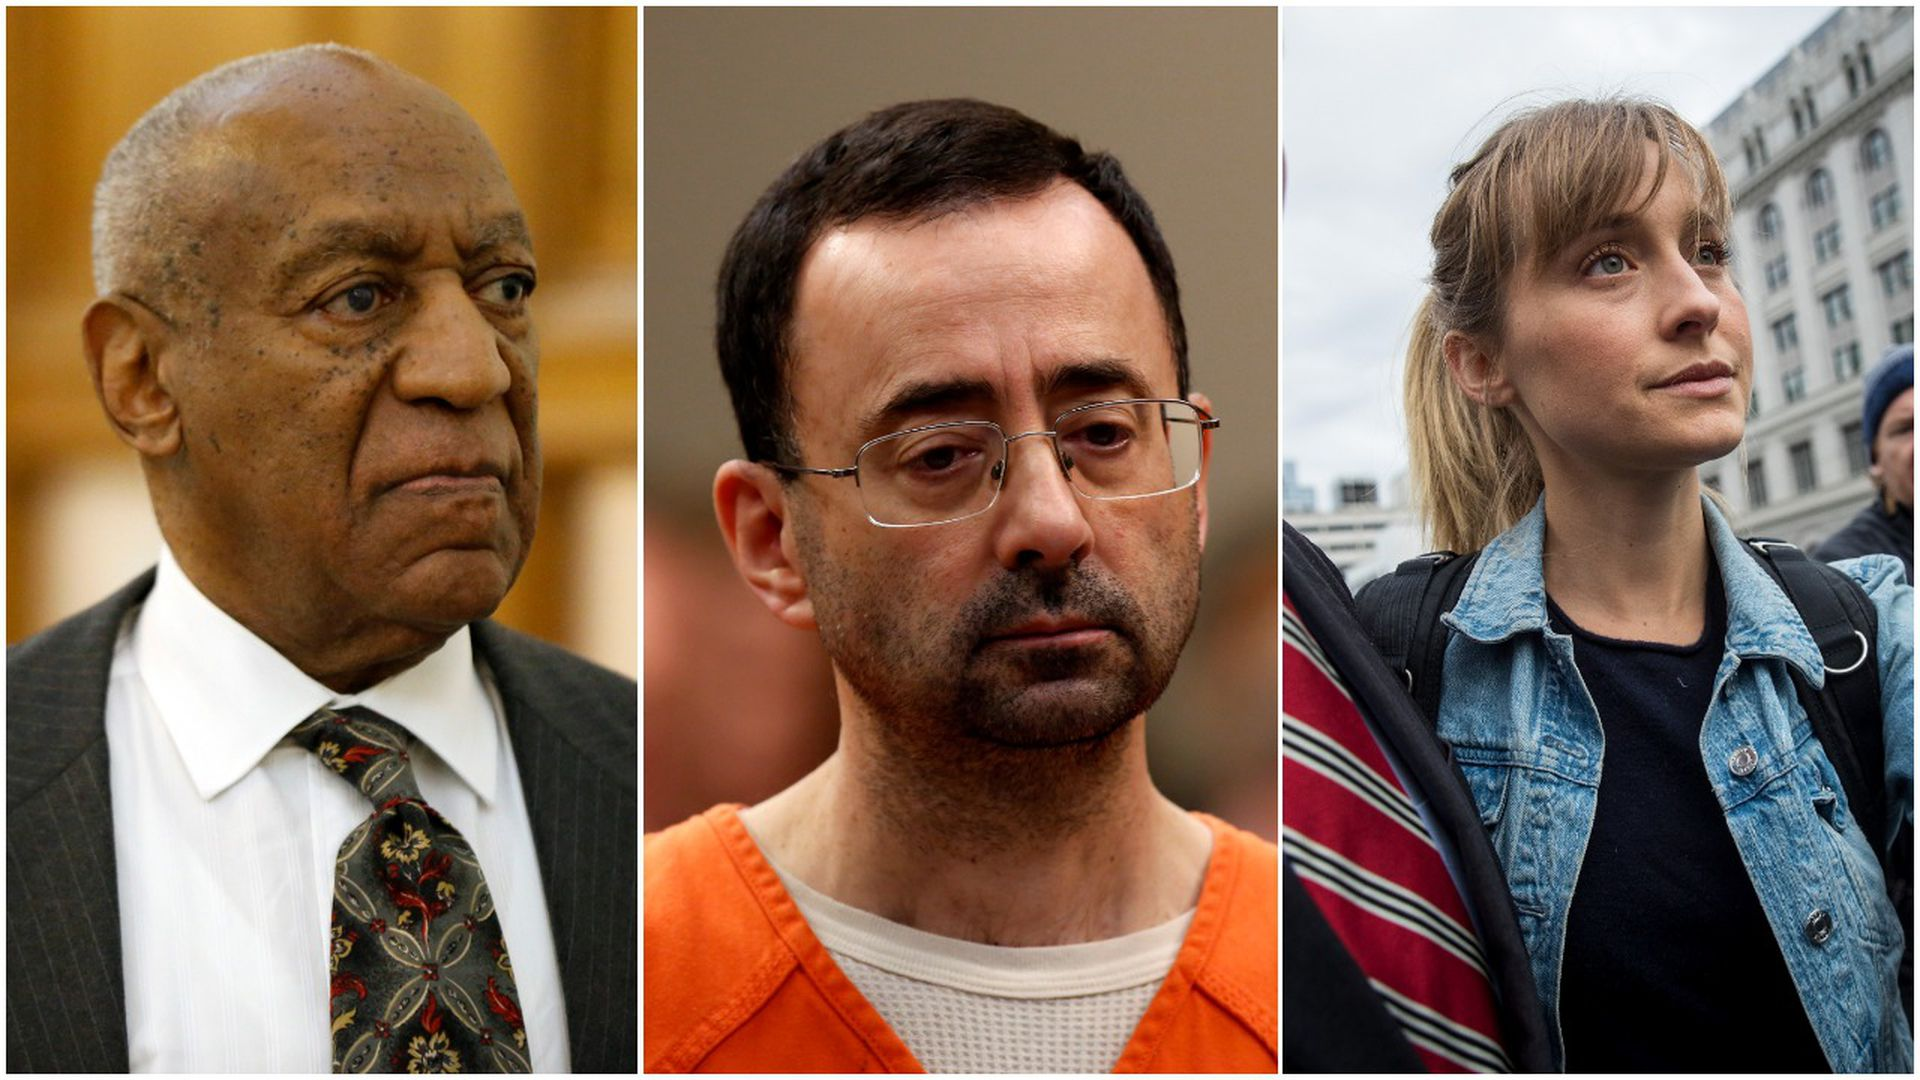 This image a three-way split between Larry Nassar, Bill Cosby, and Allison Mack